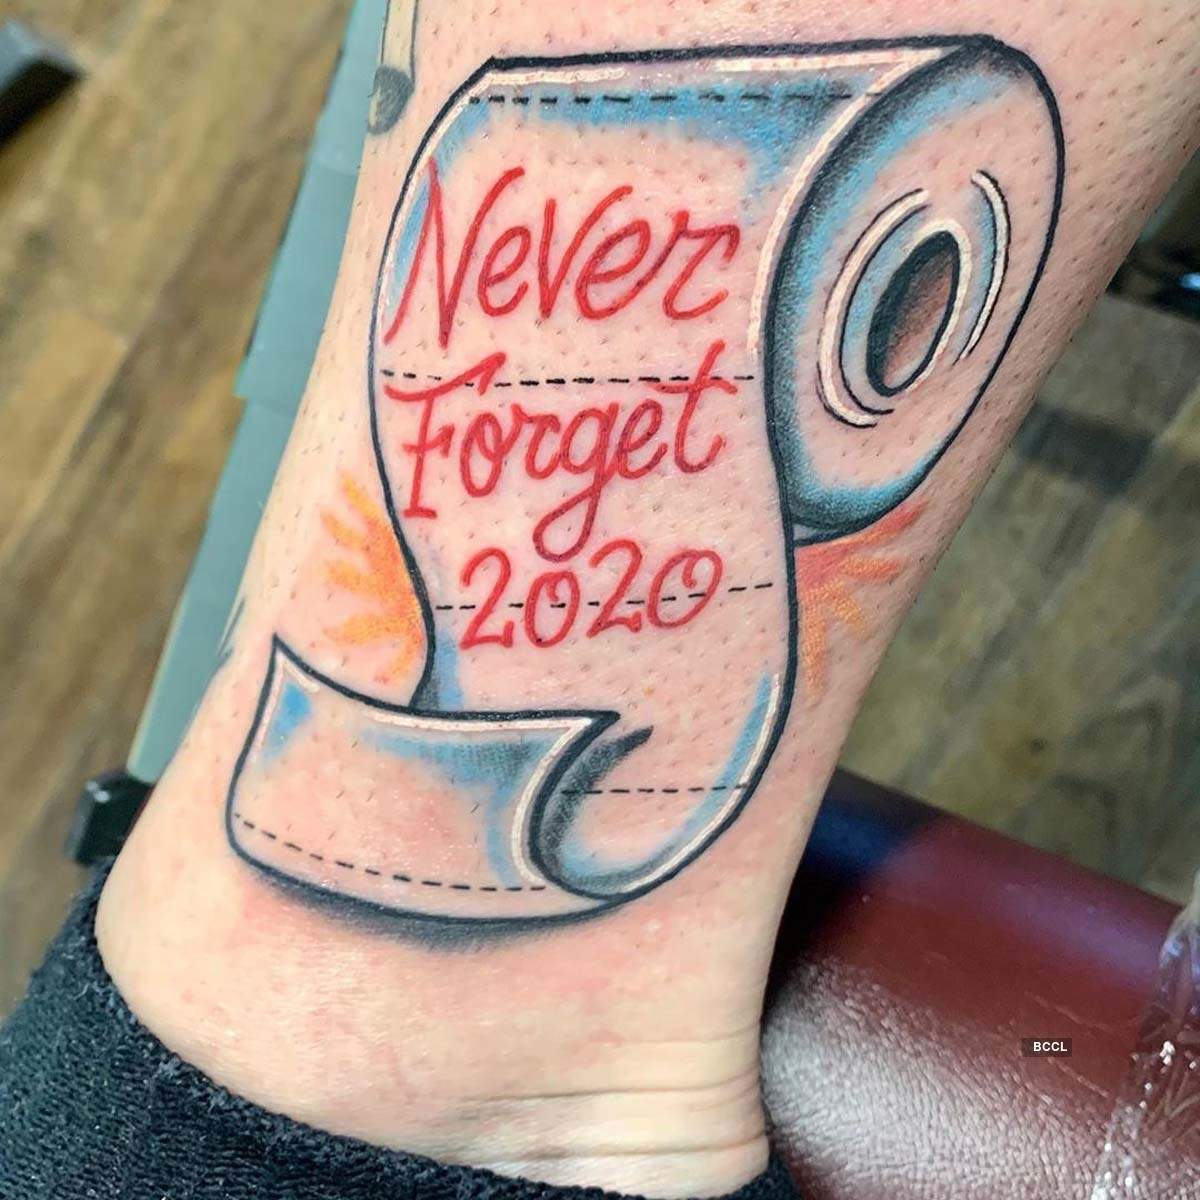 These fascinating tattoo designs inspired by Covid-19 will leave you baffled